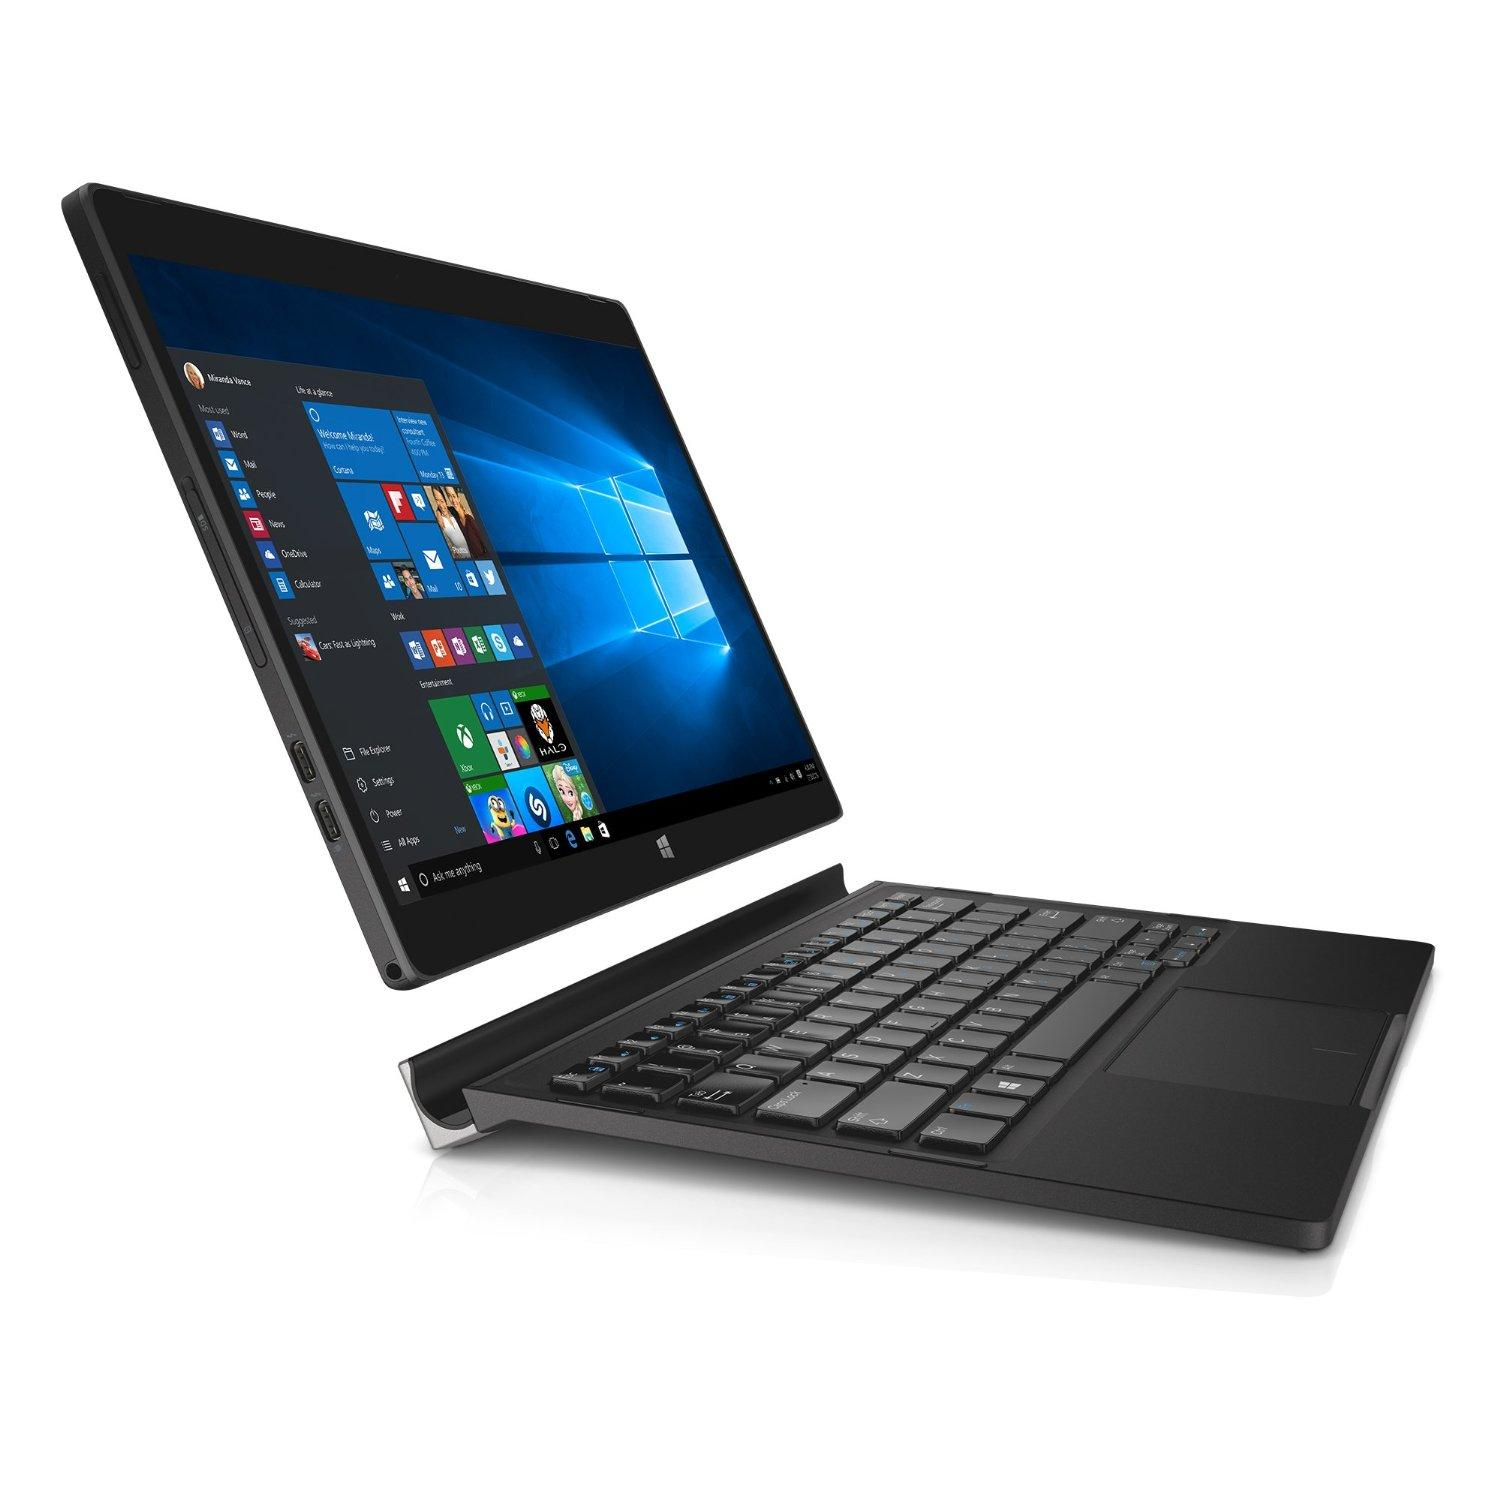 Dell XPS 12 12.5